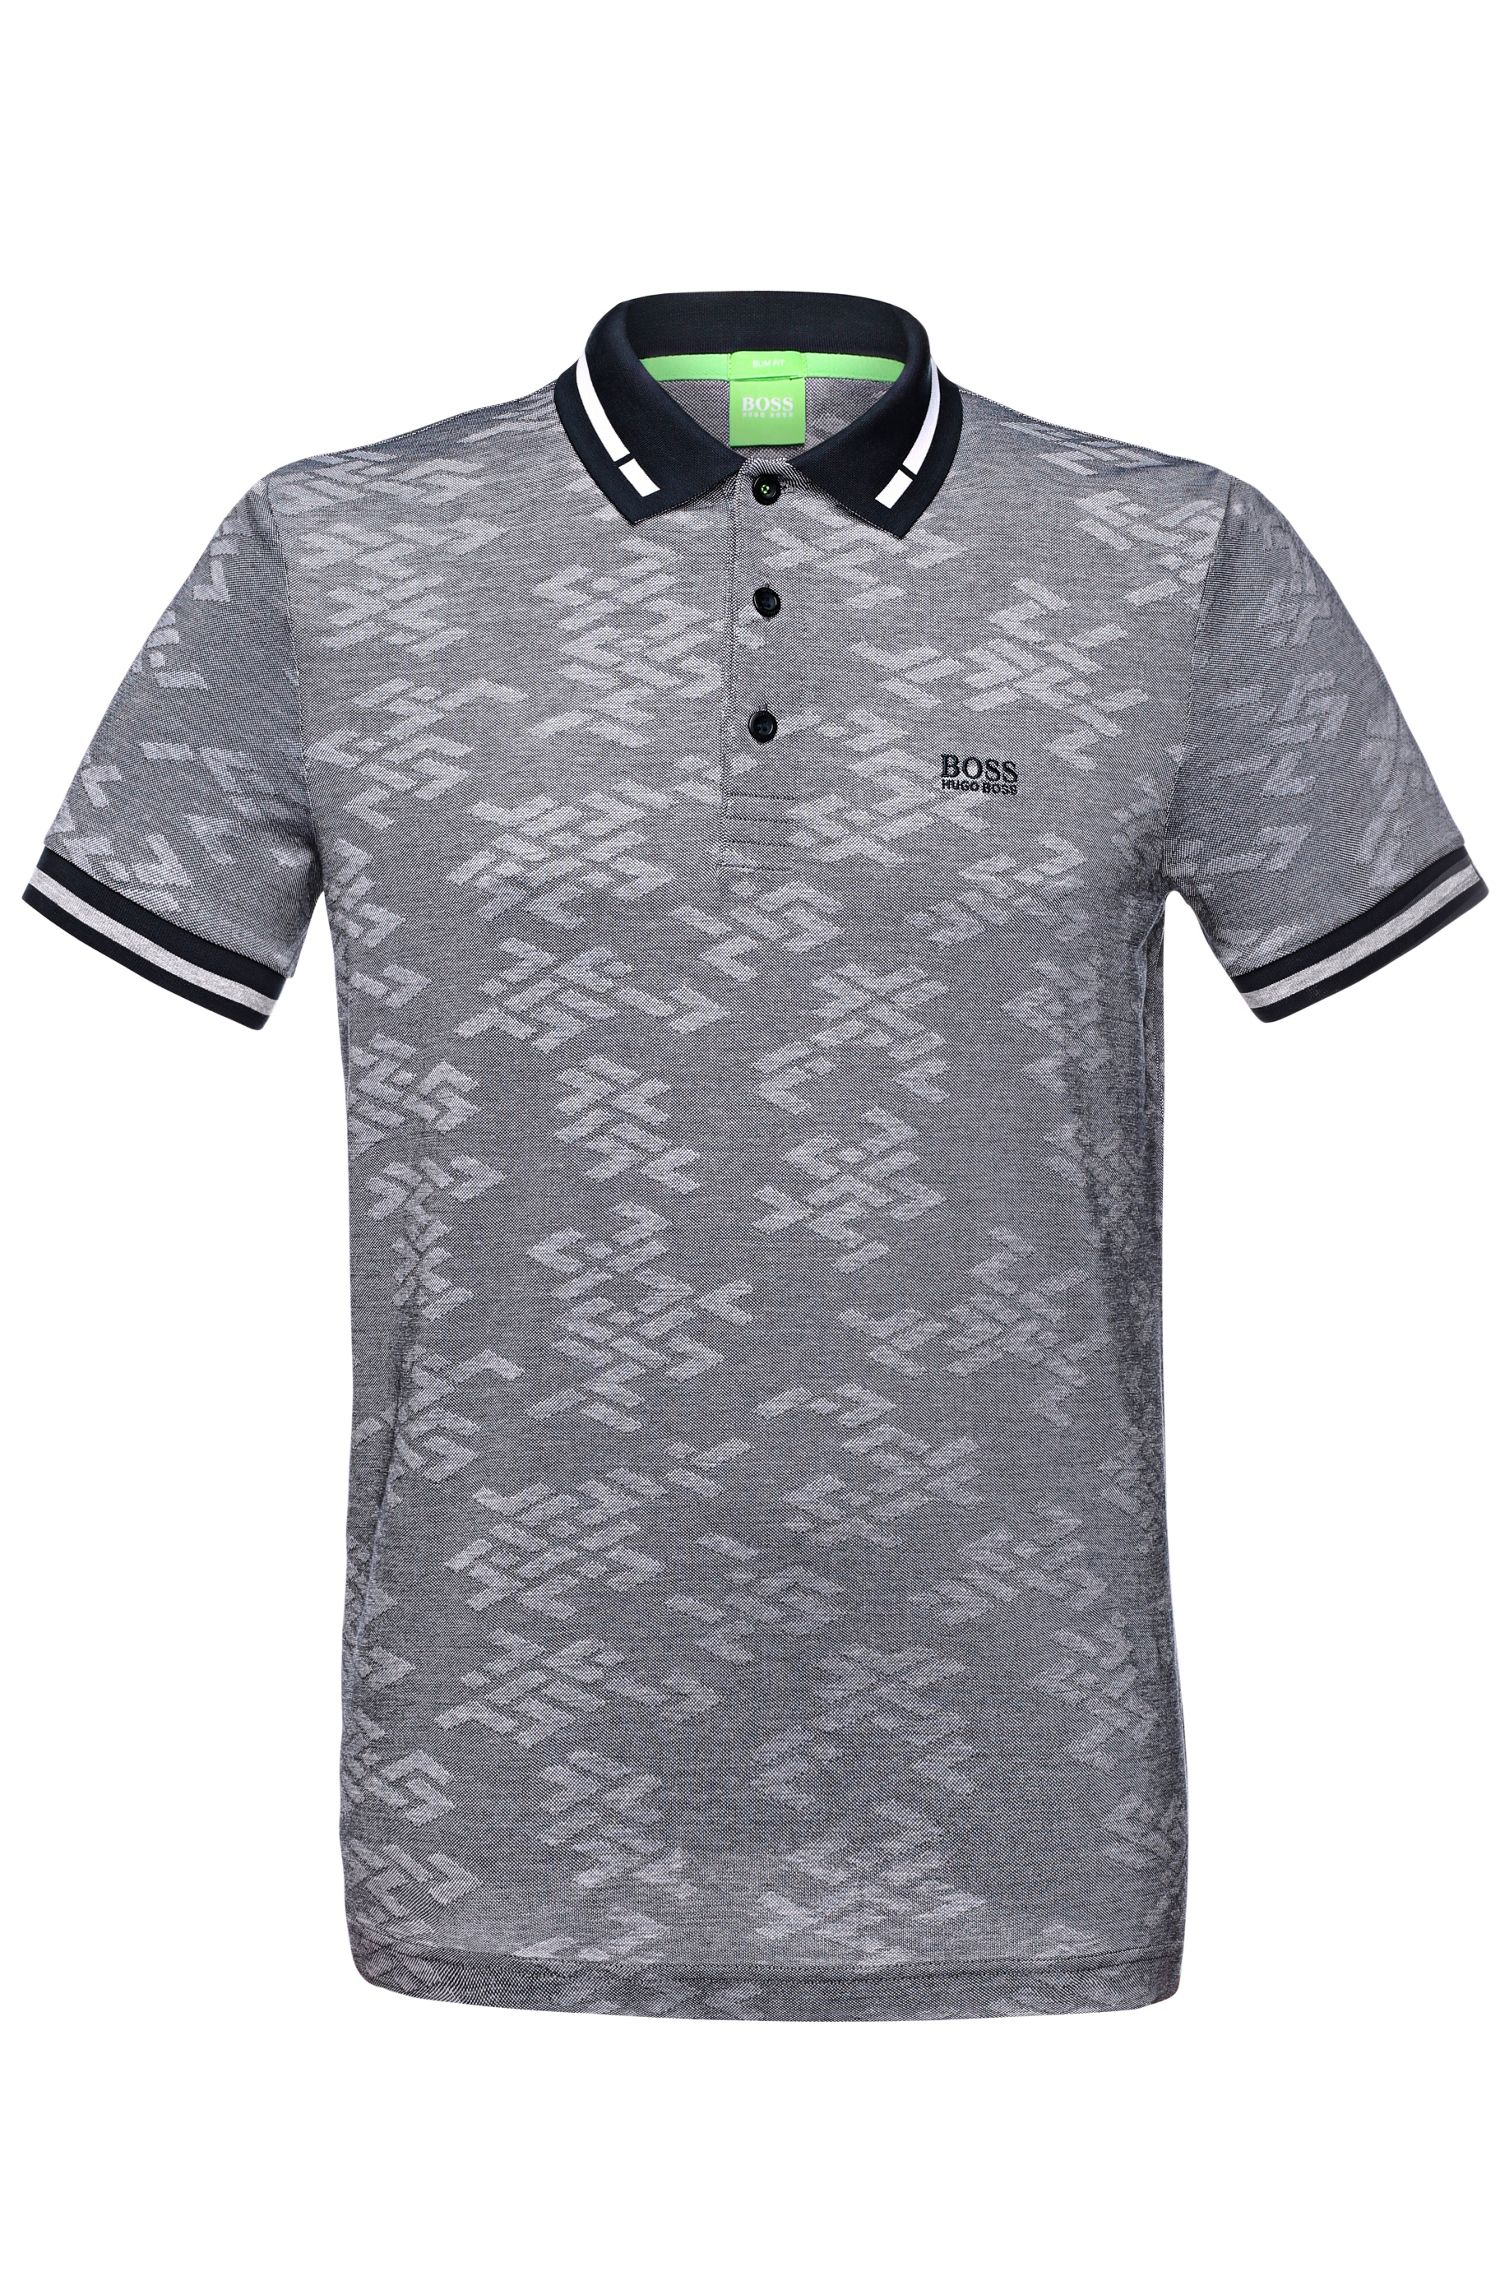 'Paule' | Slim Fit, Mercerized Cotton Jacquard Polo Shirt